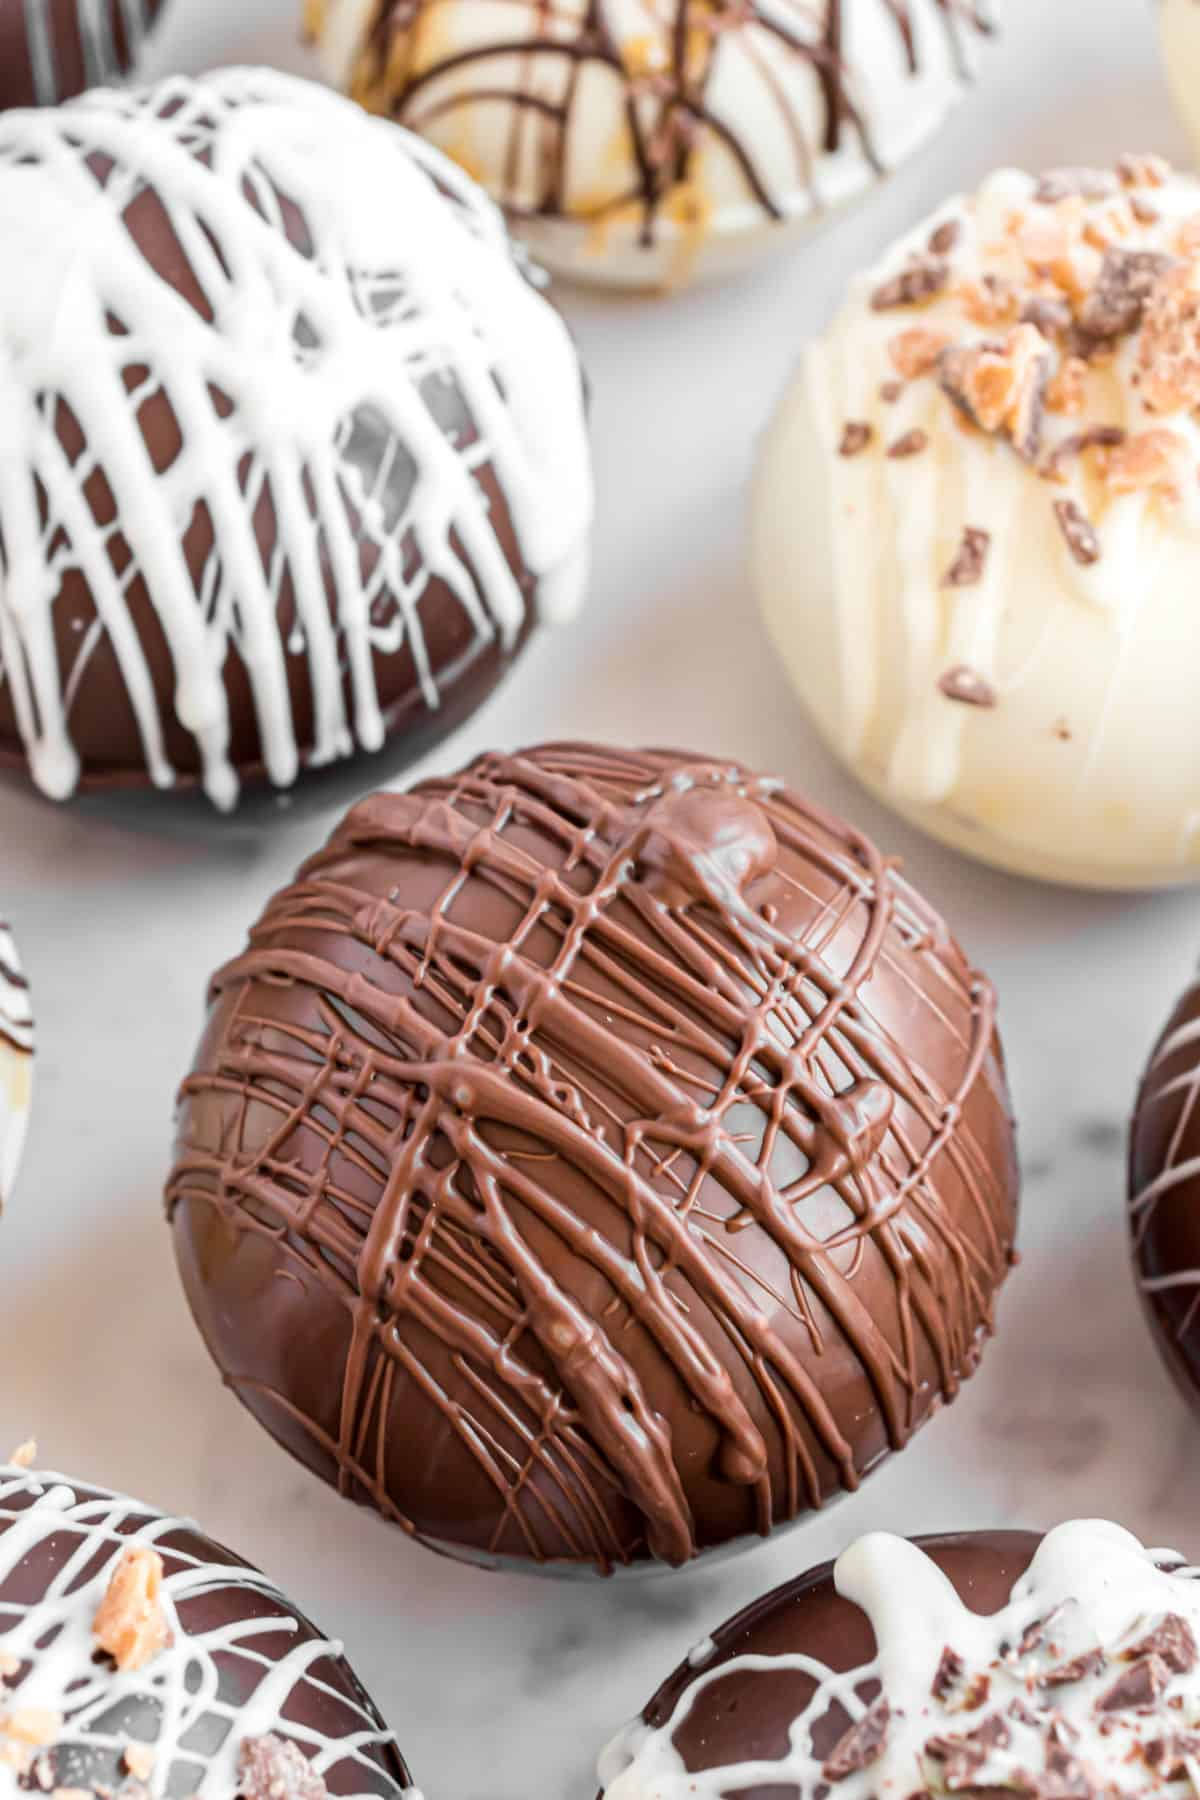 Hot chocolate cocoa bombs on a parchment paper baking sheet ready to use.